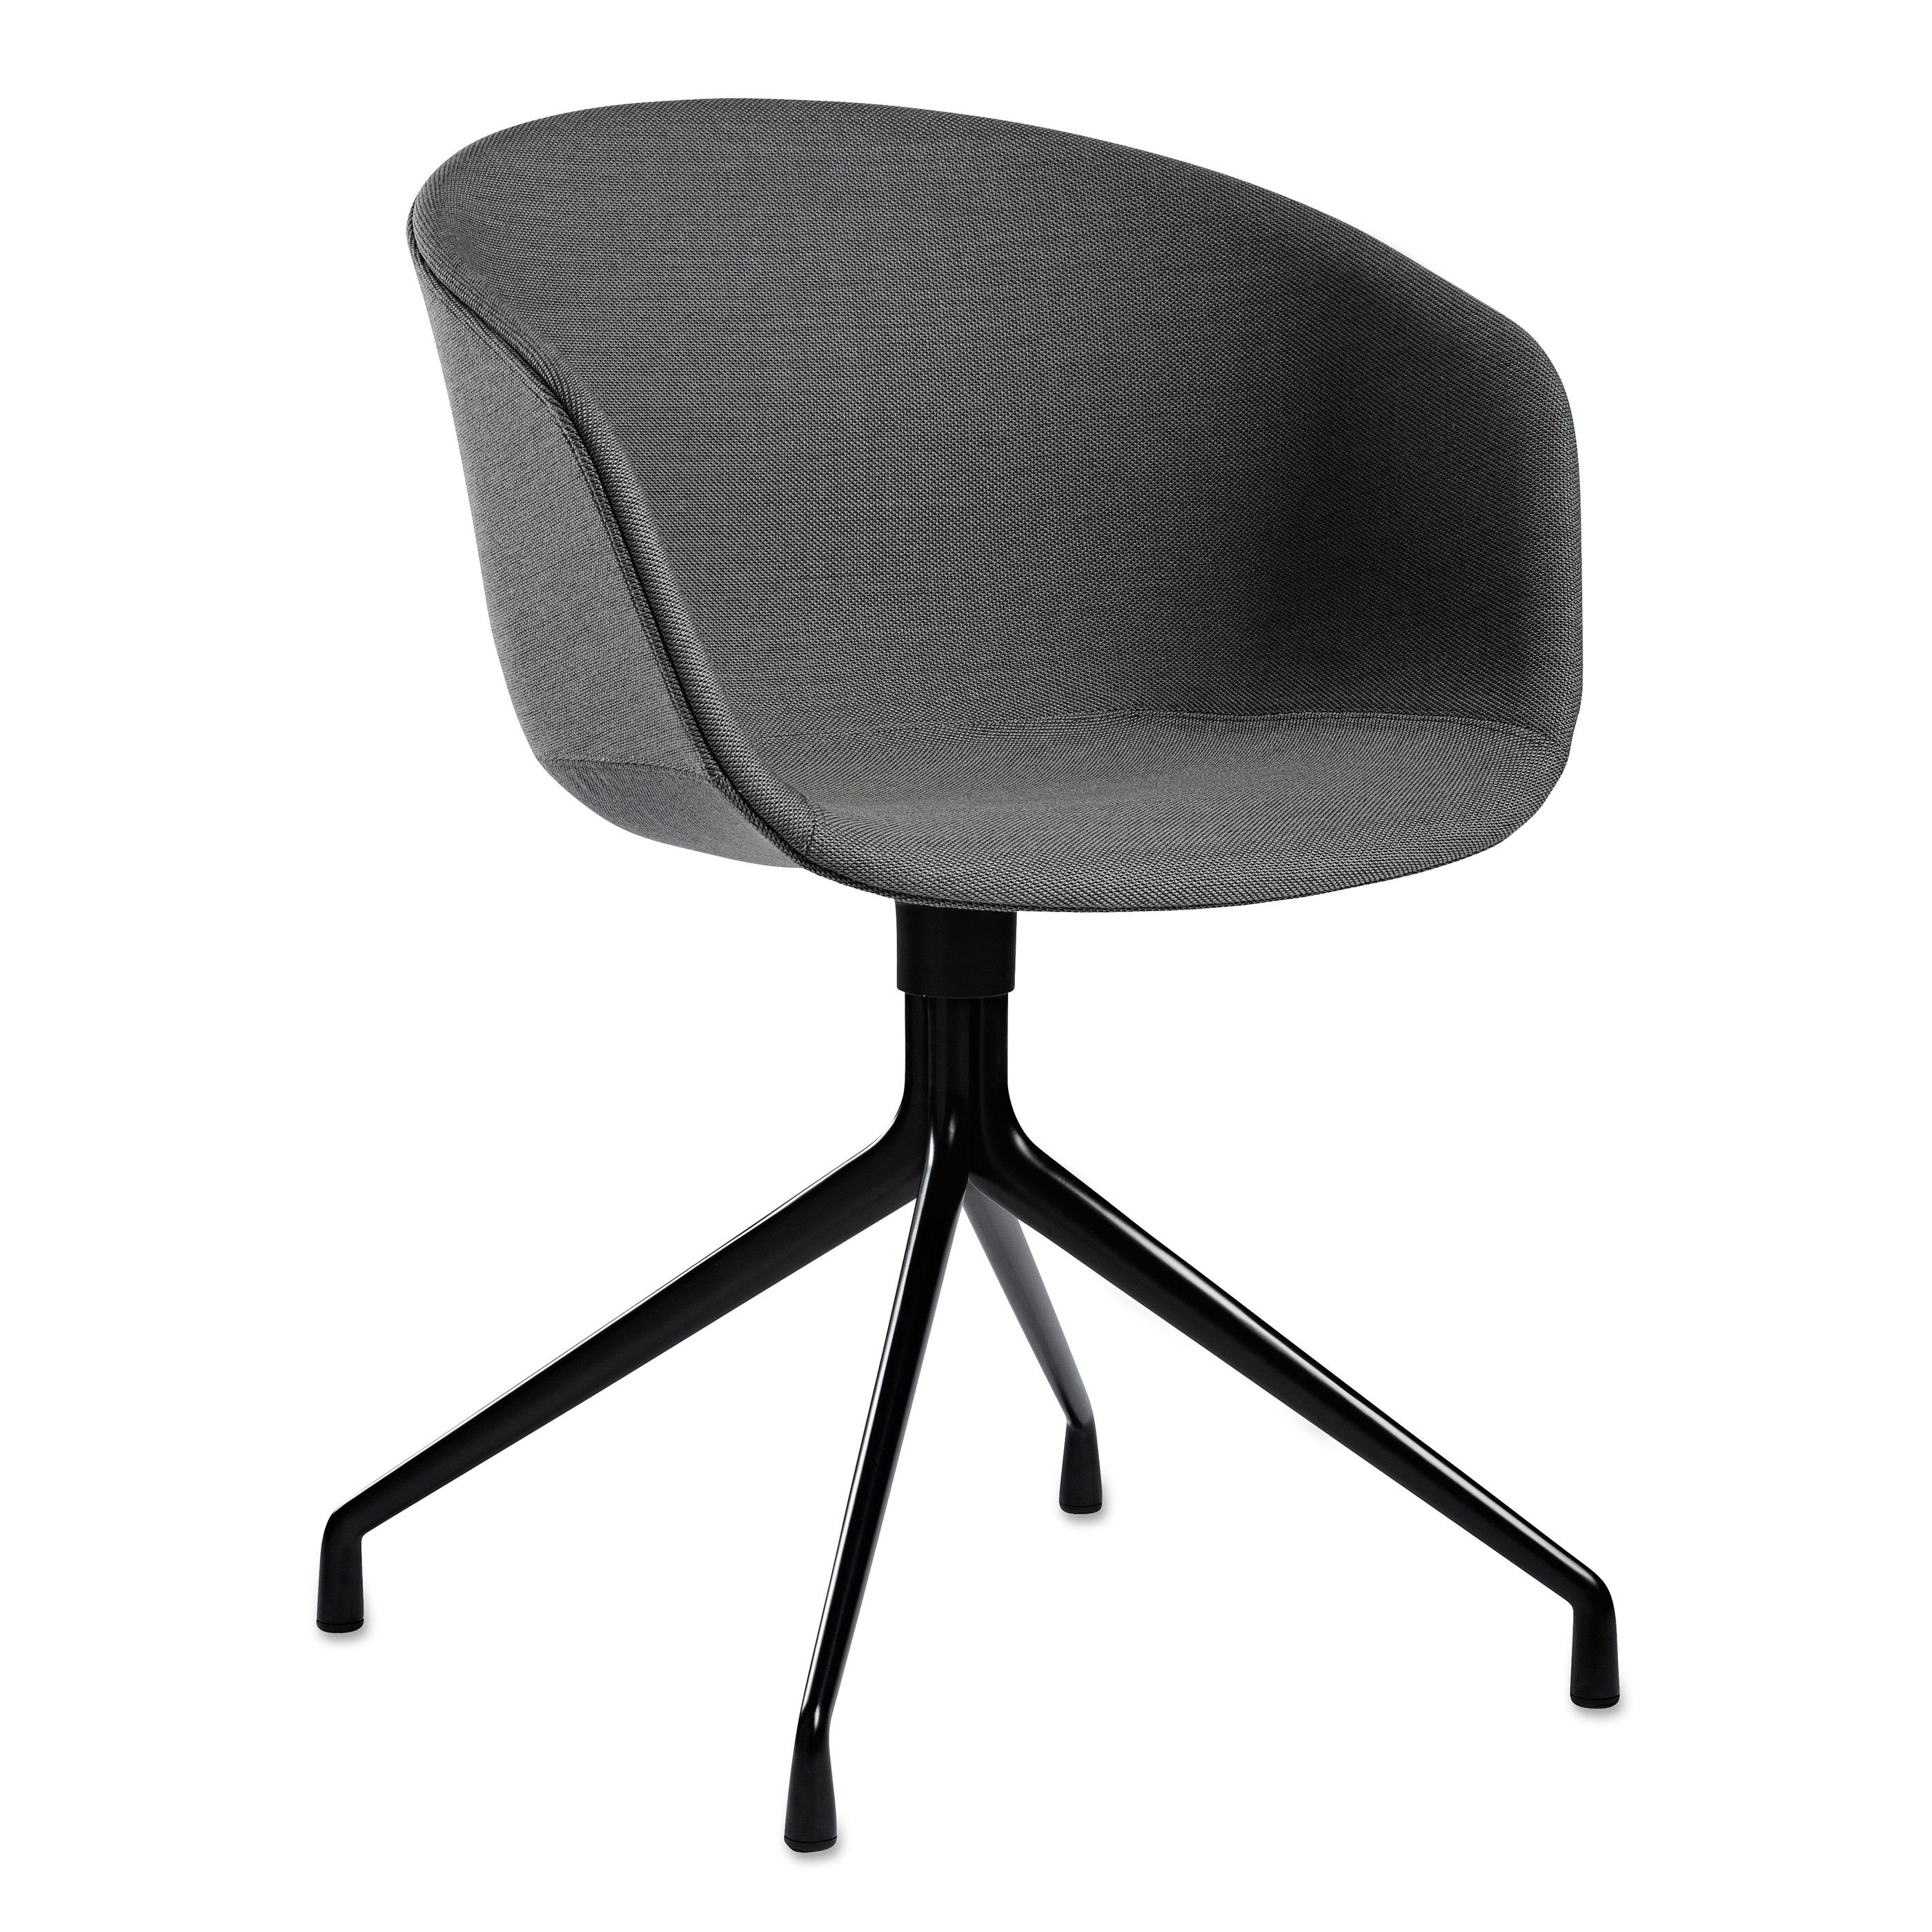 office chair conference dining scandinavian design aac22. About A Chair AAC21 Stoel | Hay Office Conference Dining Scandinavian Design Aac22